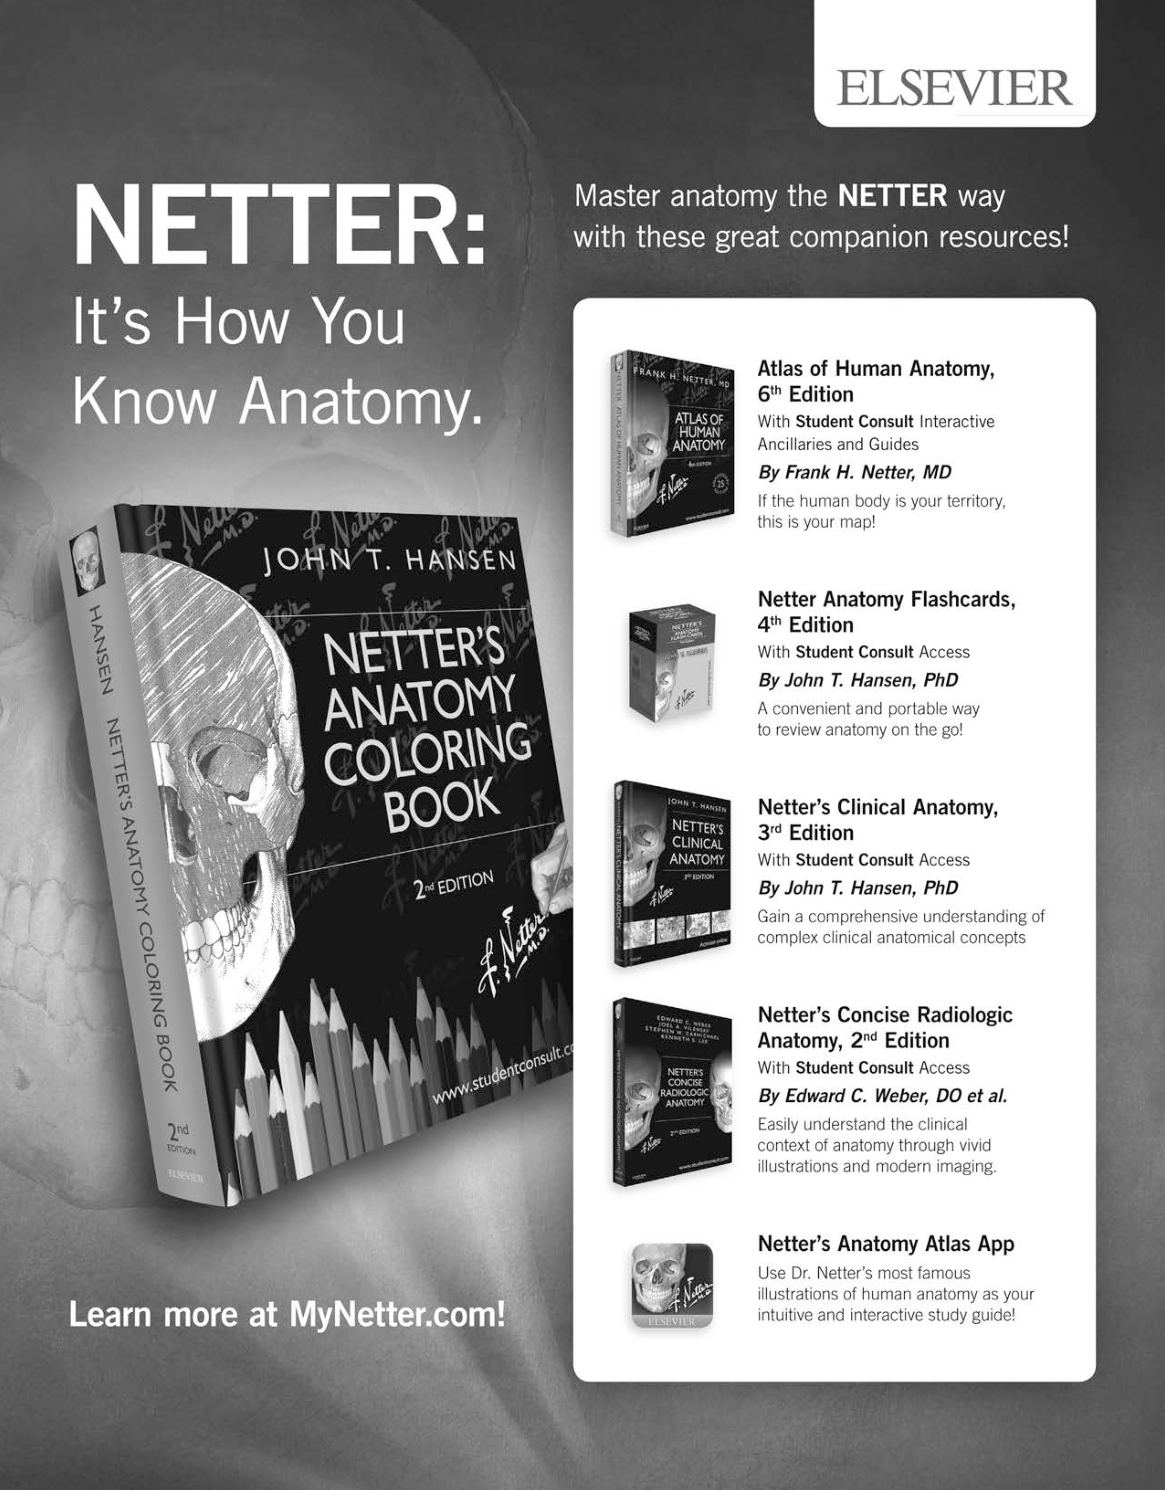 Netter\'s Anatomy Coloring Book - CALAMEO Downloader